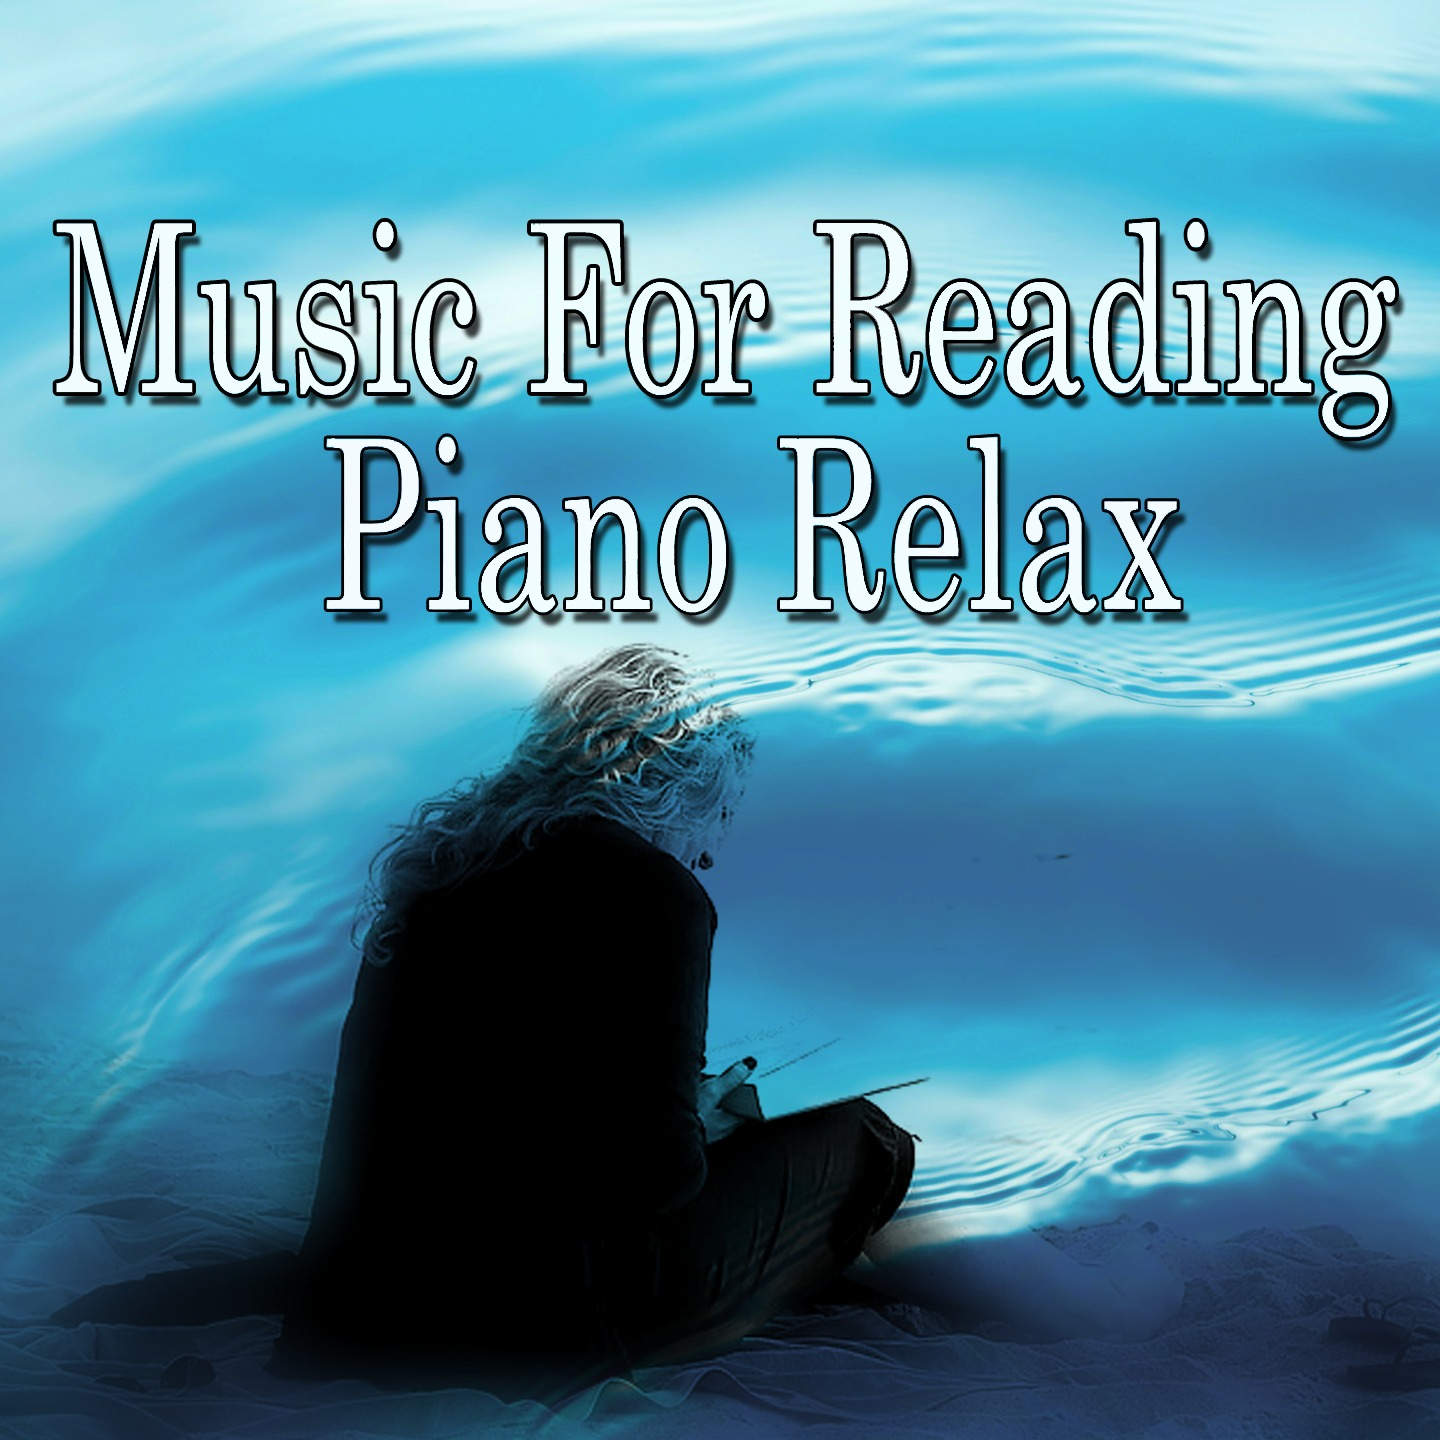 Music for Reading Piano Relax